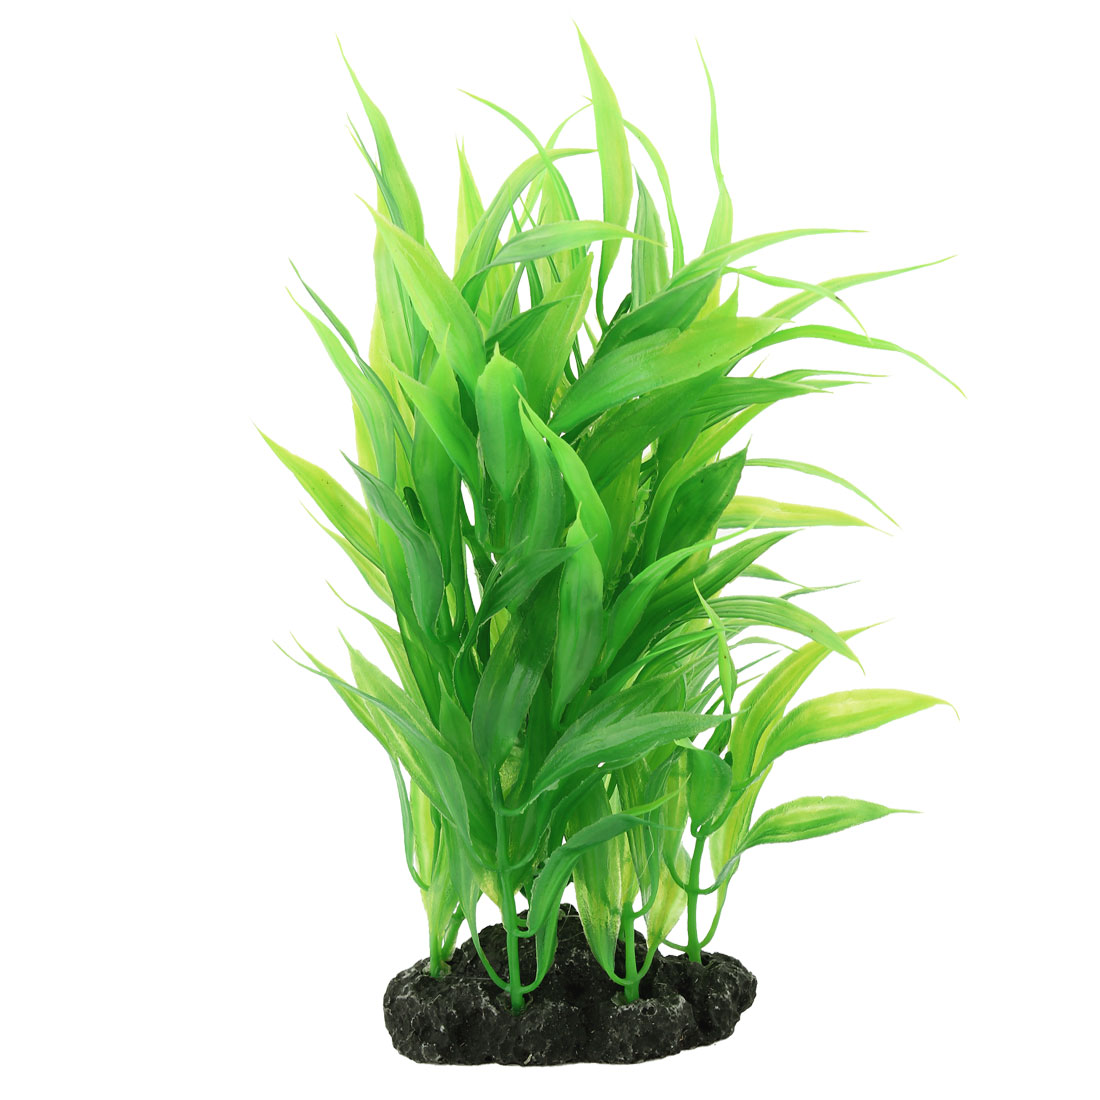 "8.3"" High Artificial Plastic Plants Grass Green for Fish Tank Aquarium"